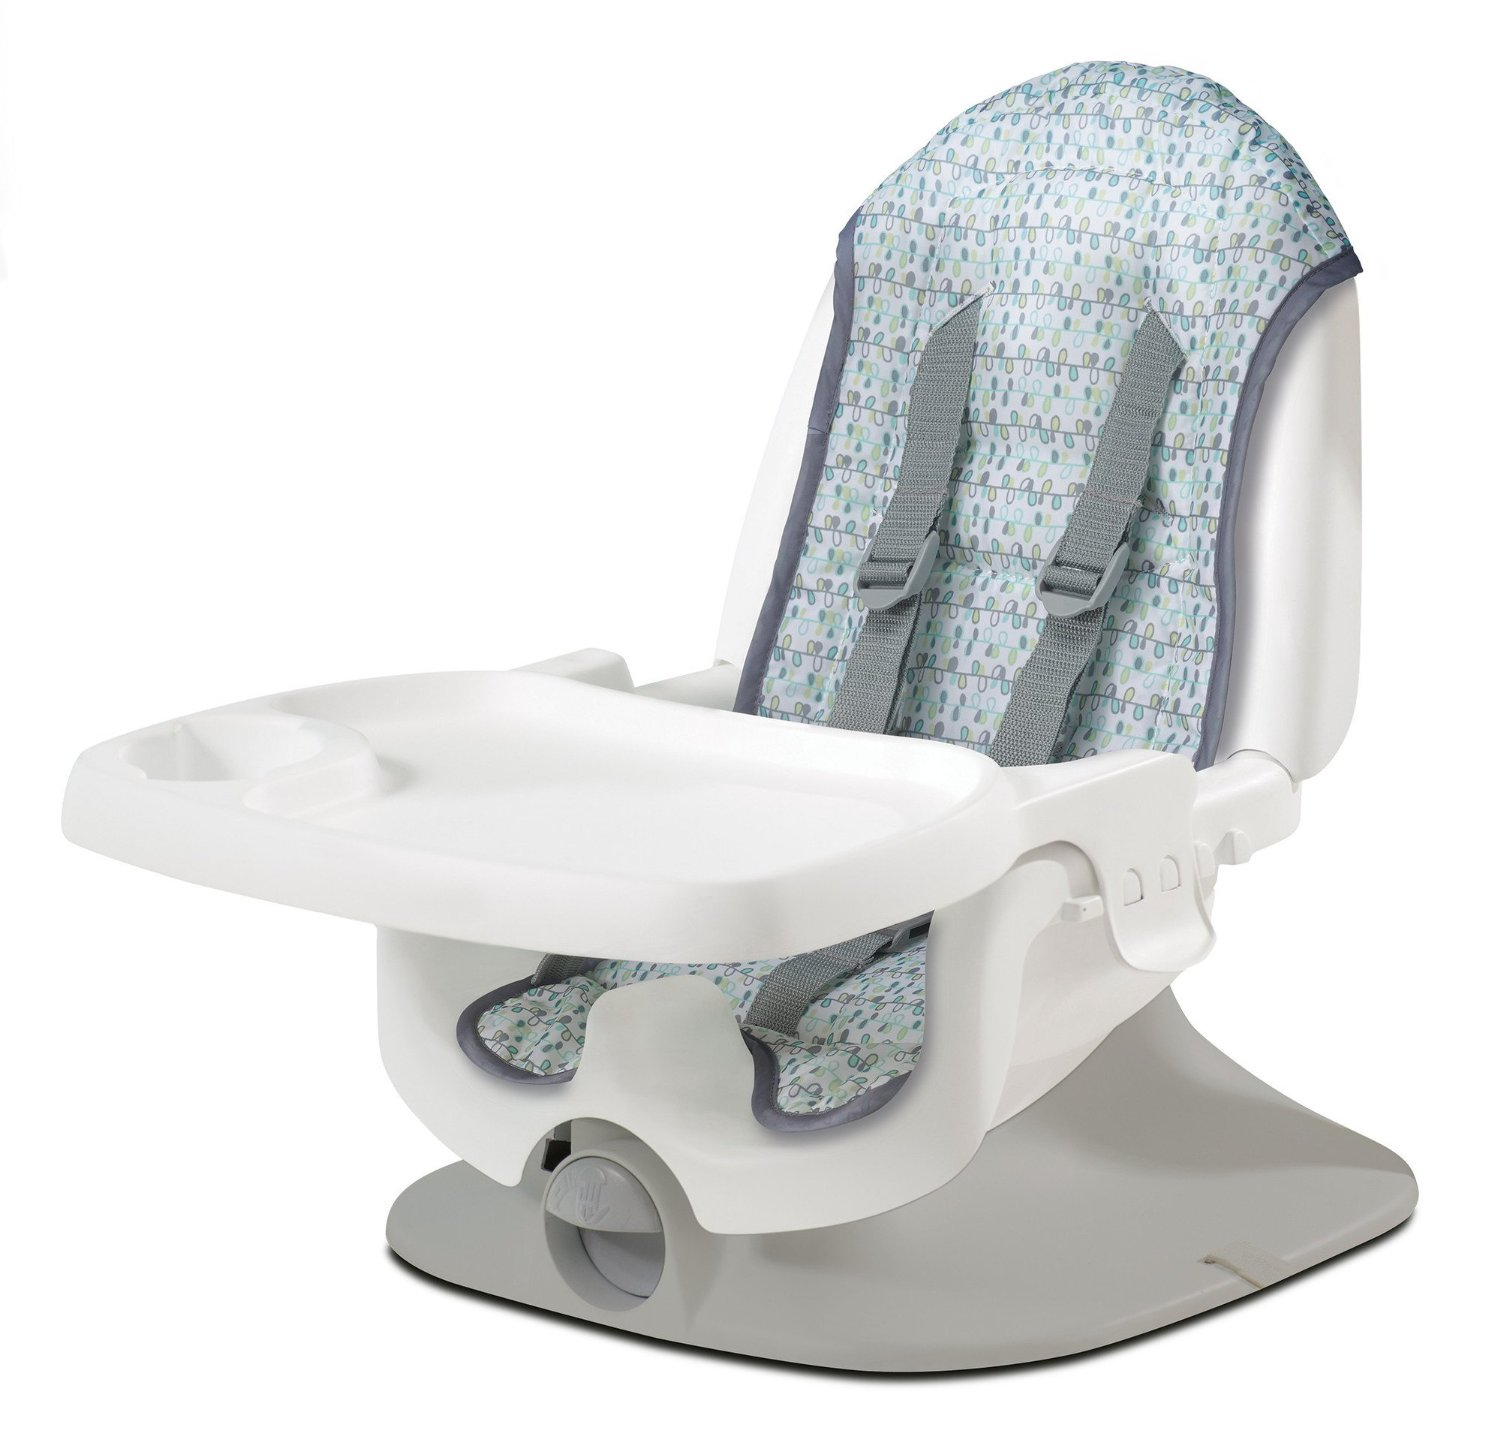 The First Years Deluxe Reclining Feeding Seat Review